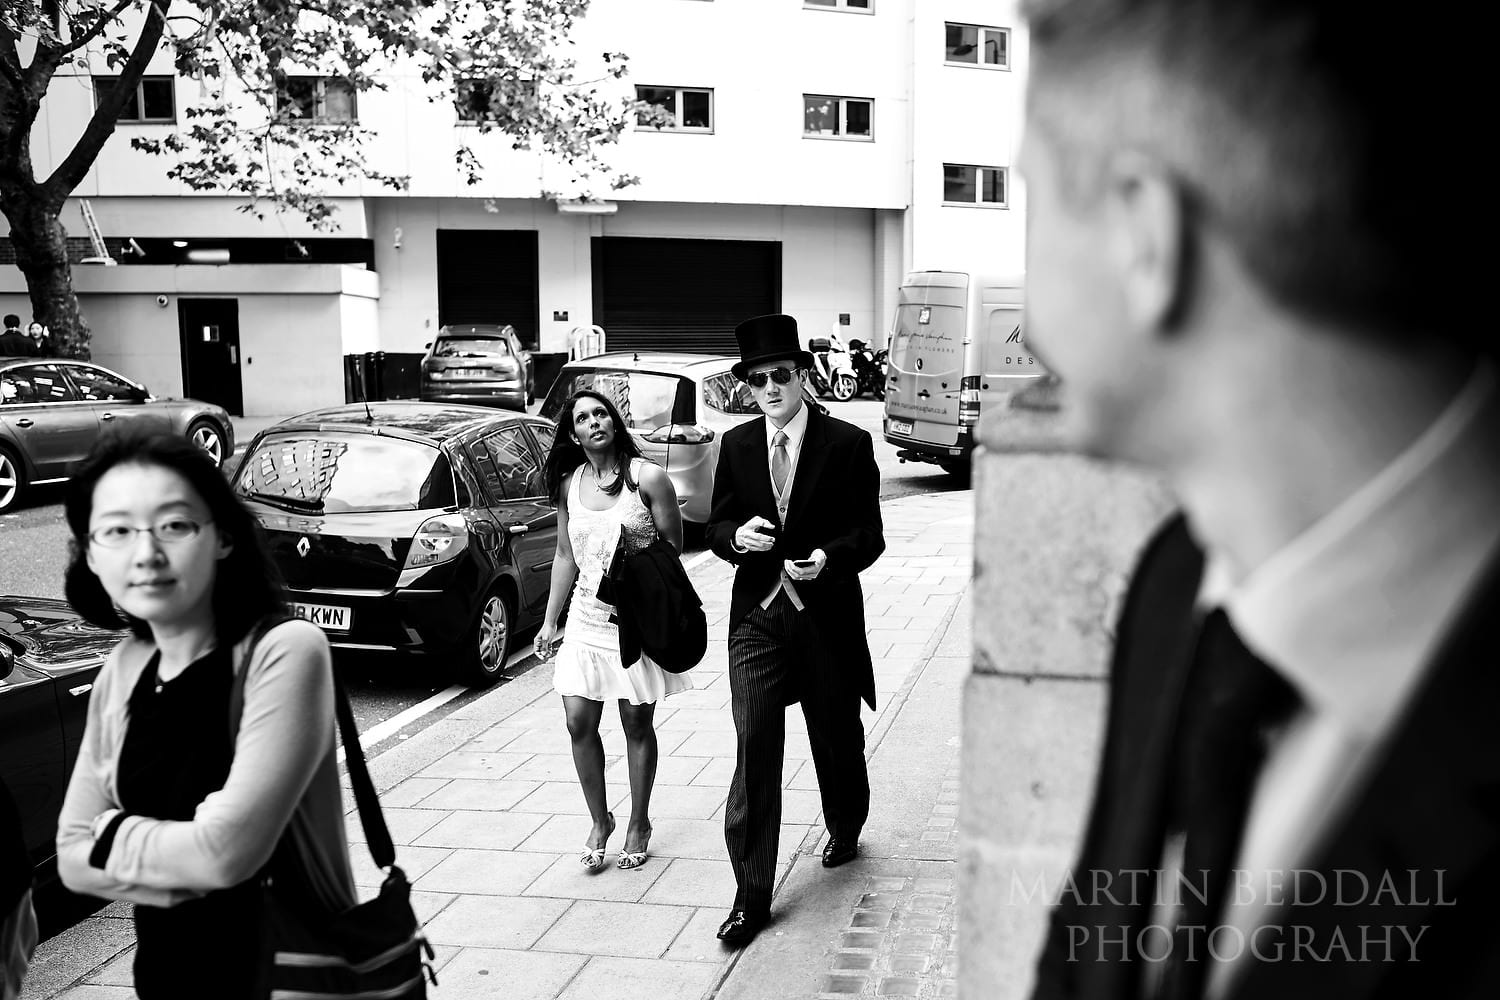 Wedding guests start to arive at The Lansdowne Club